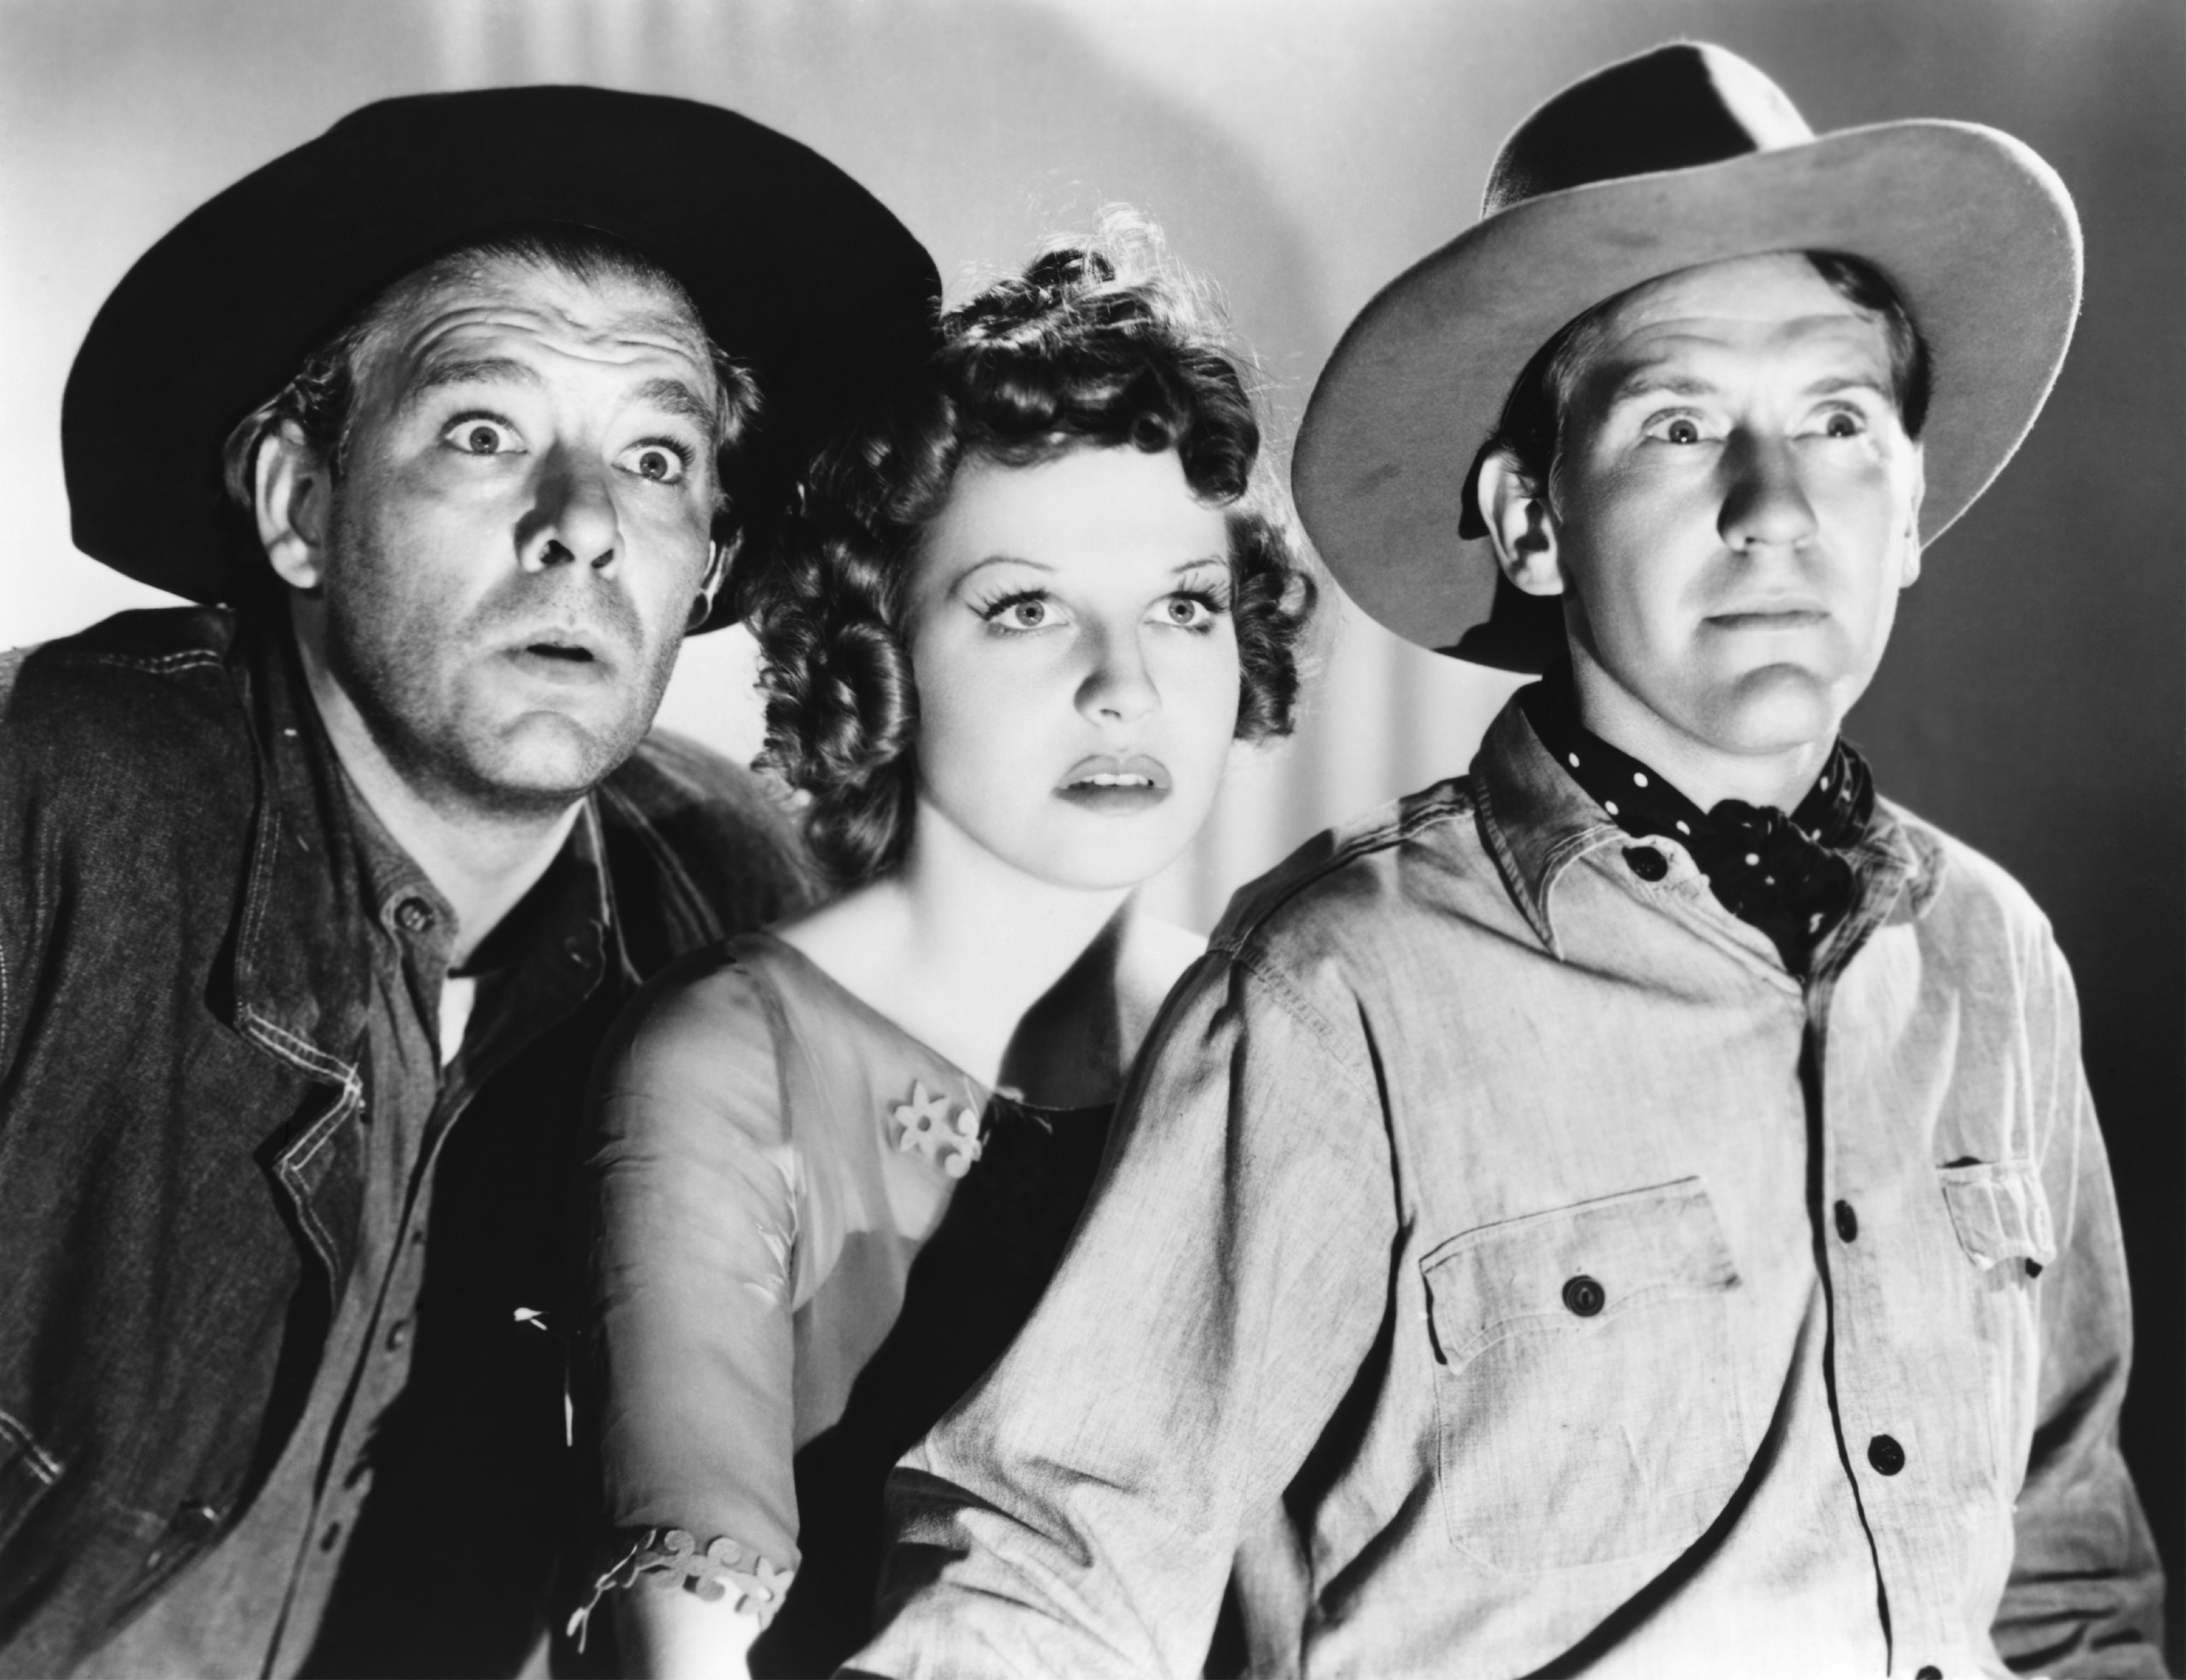 Burgess Meredith in Of Mice and Men (L to R) Lon Chaney, Jr., Betty Field, Burgess Meredith